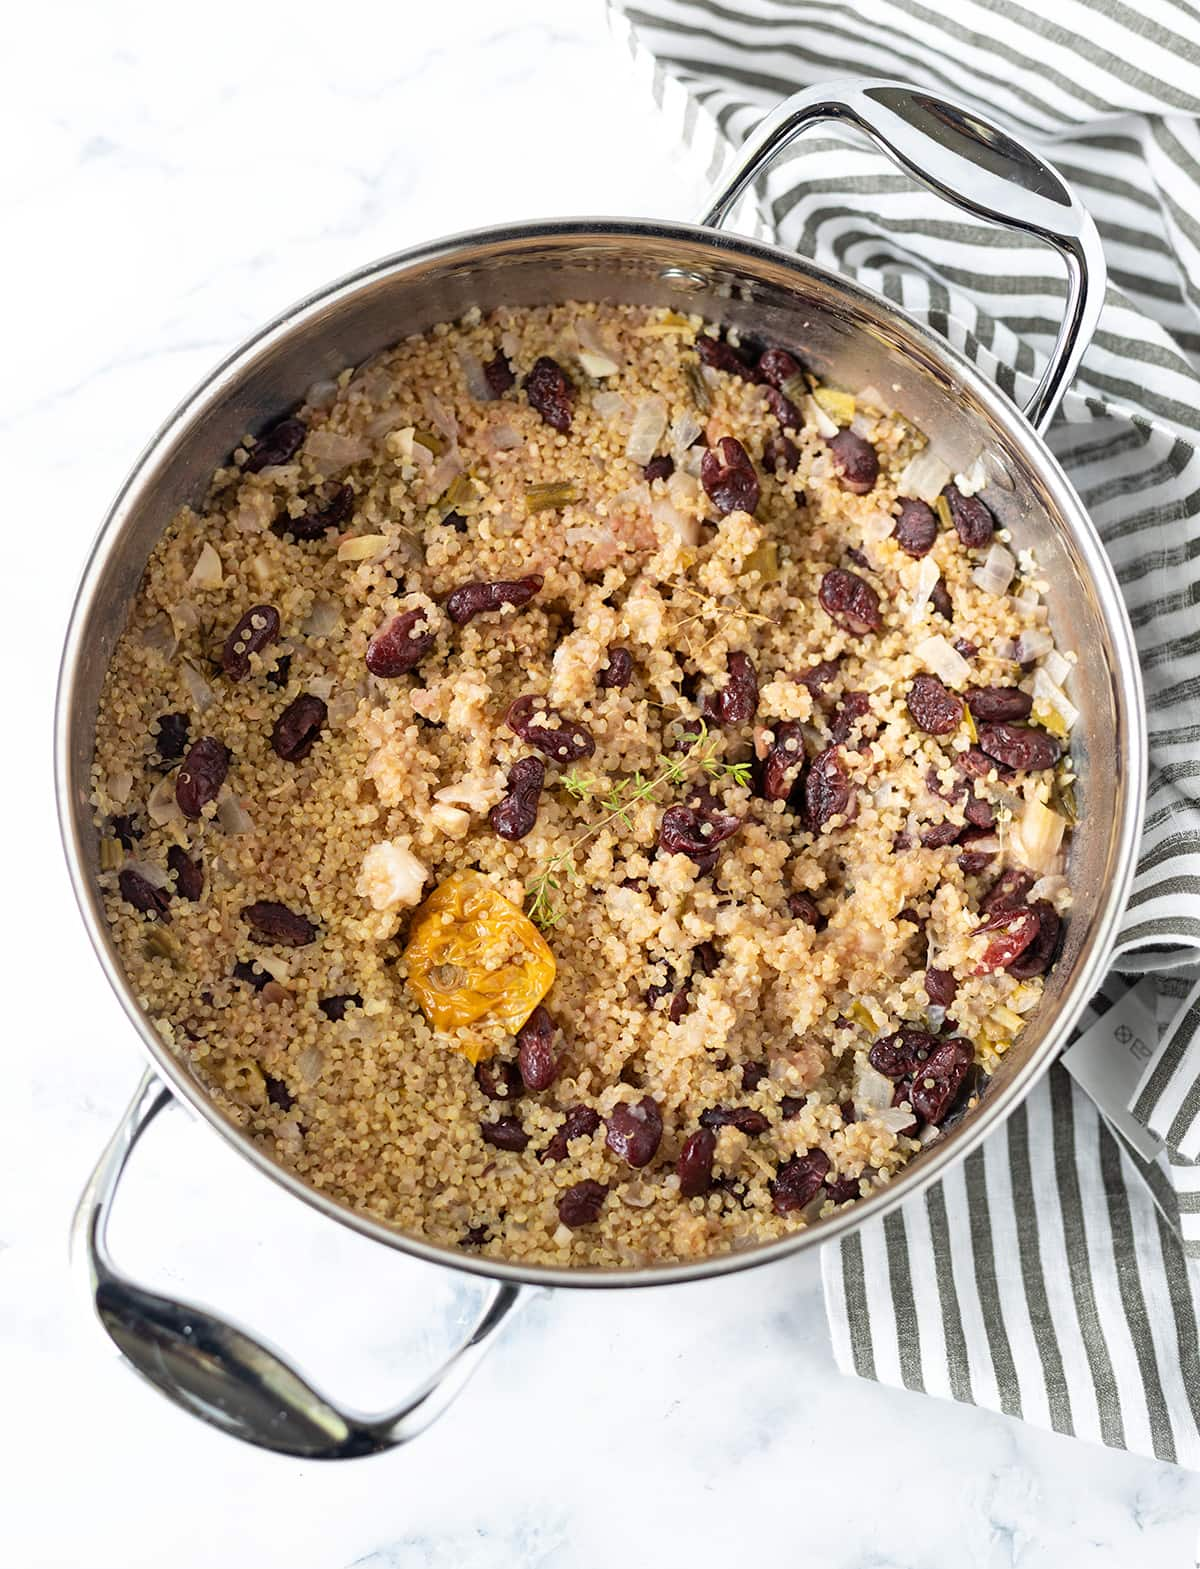 Jamaican quinoa and peas quinoa cooked with dark red kidney beans on.a white background with a black and white striped napkin